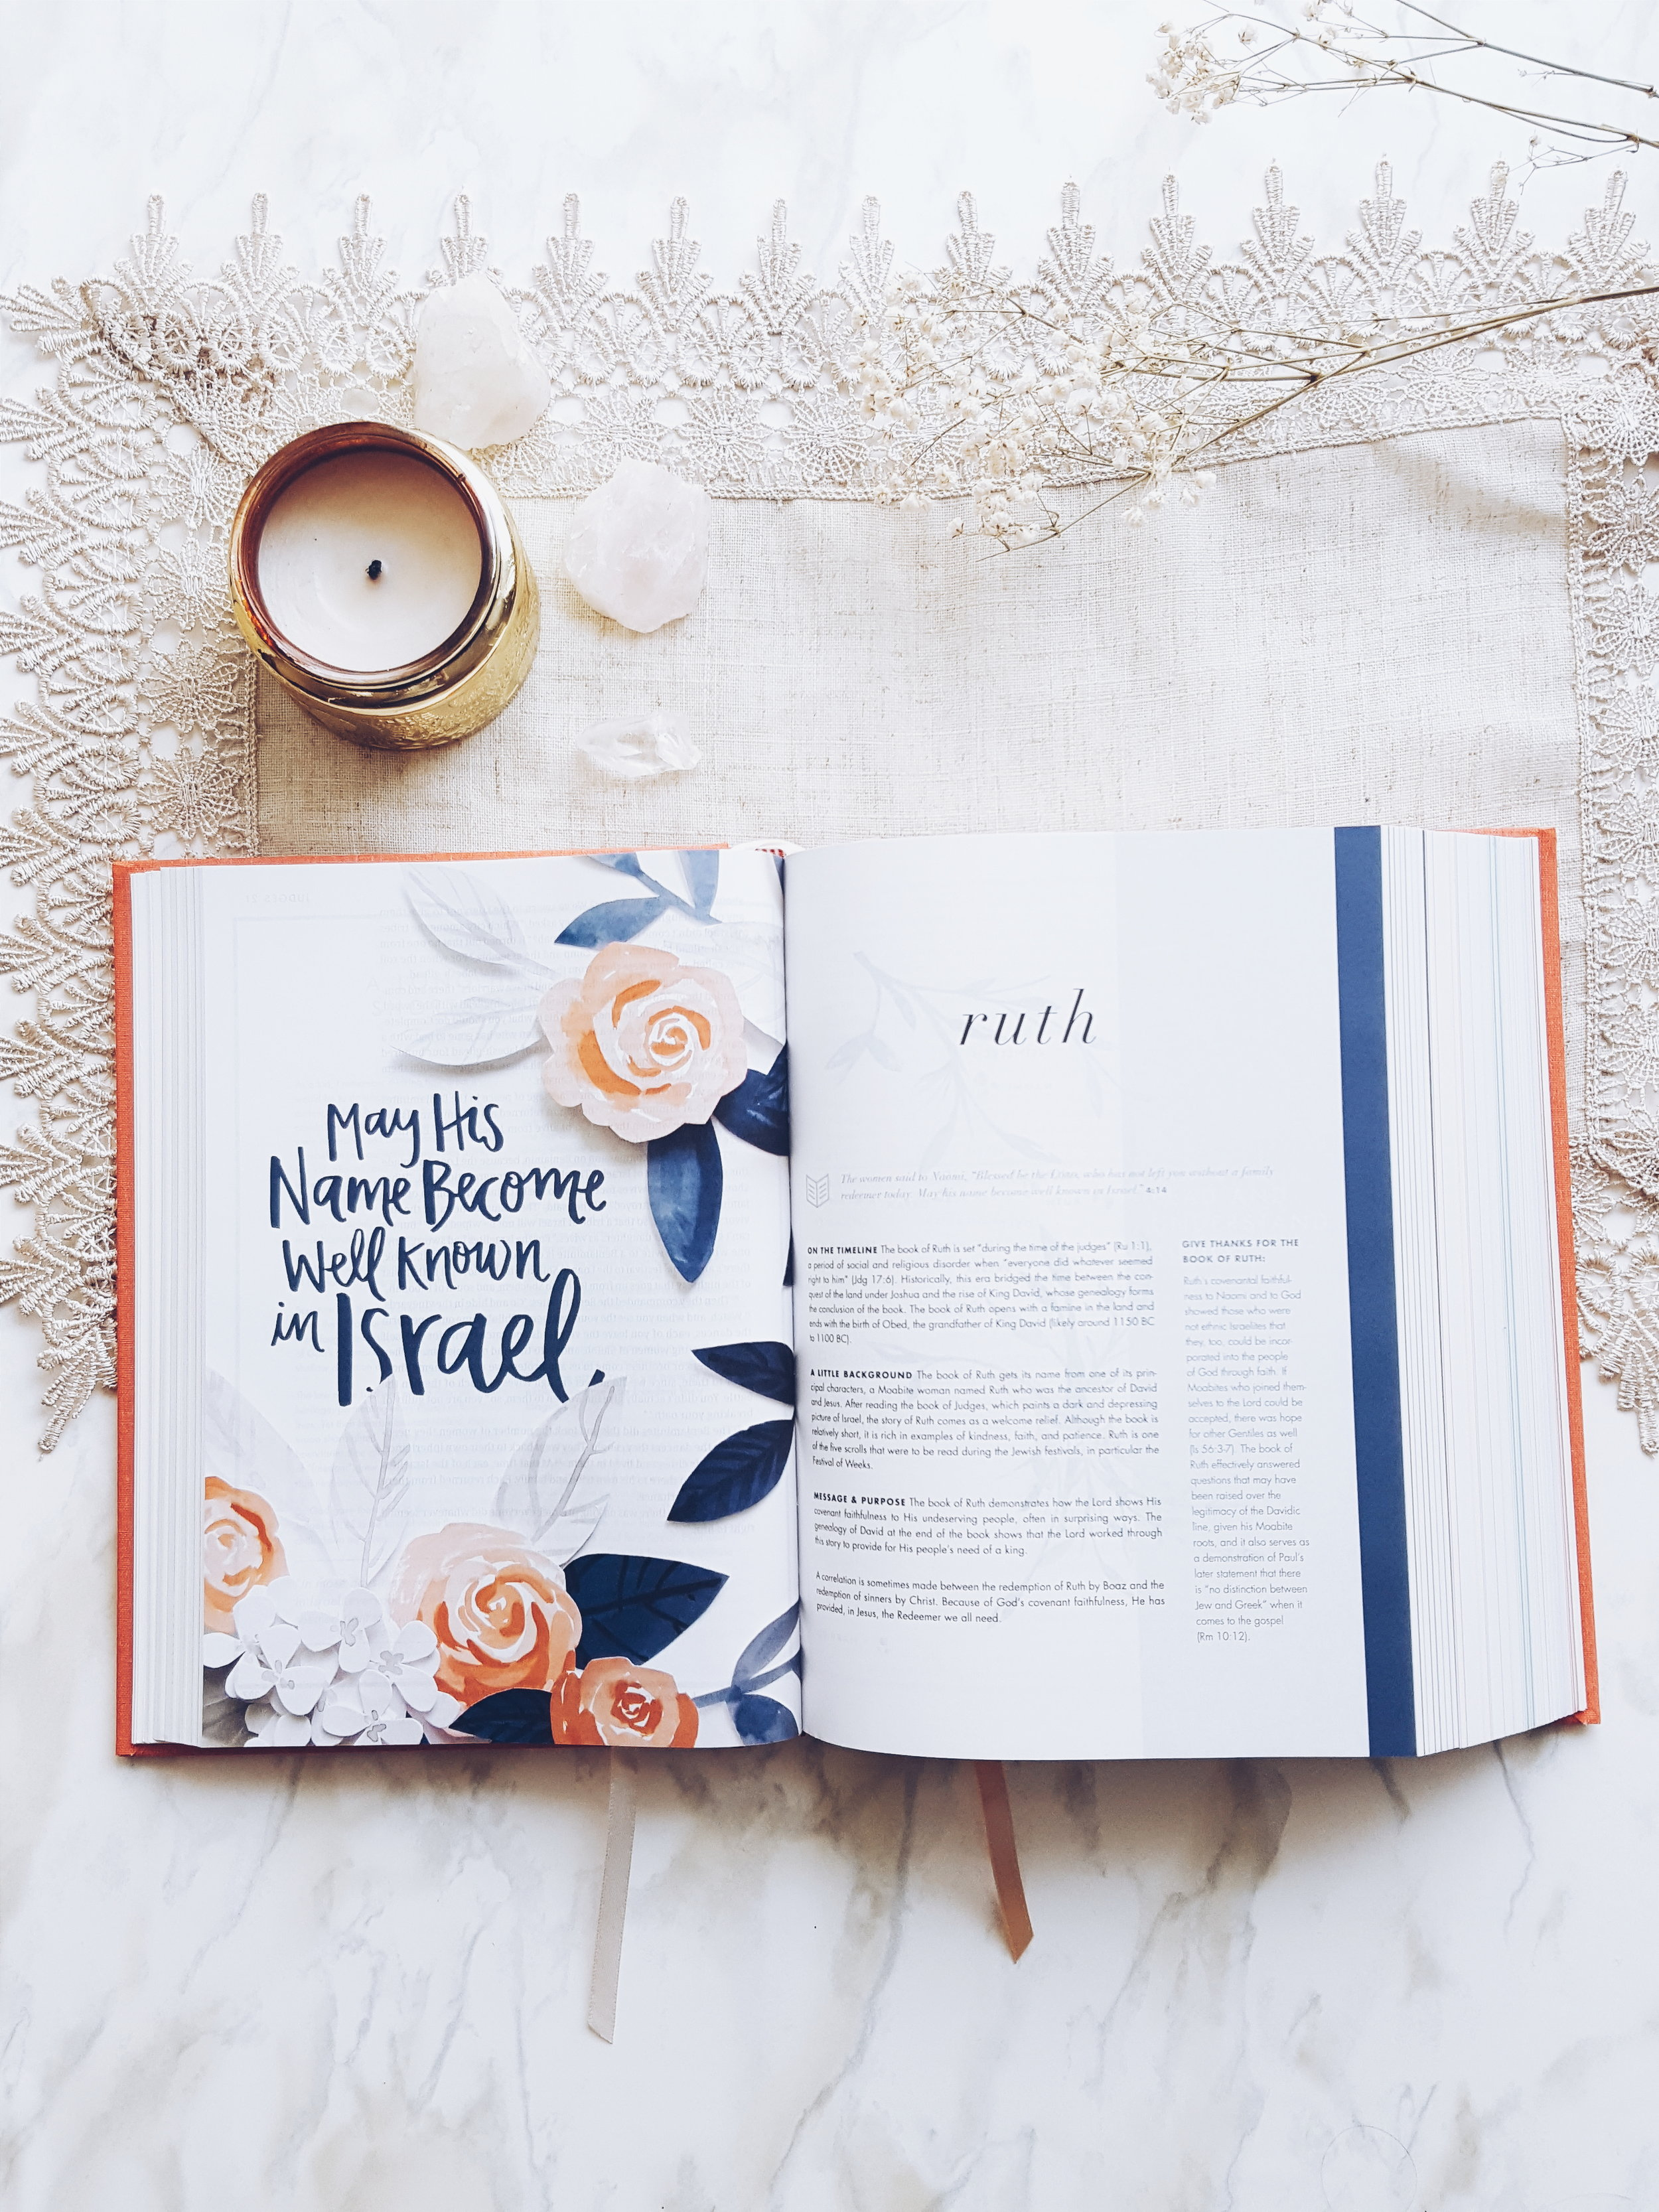 In 2017, She Reads Truth launched a beautiful Bible featuring some of their Devotionals - Holman Christian Standard Bible (HCSB) Translation